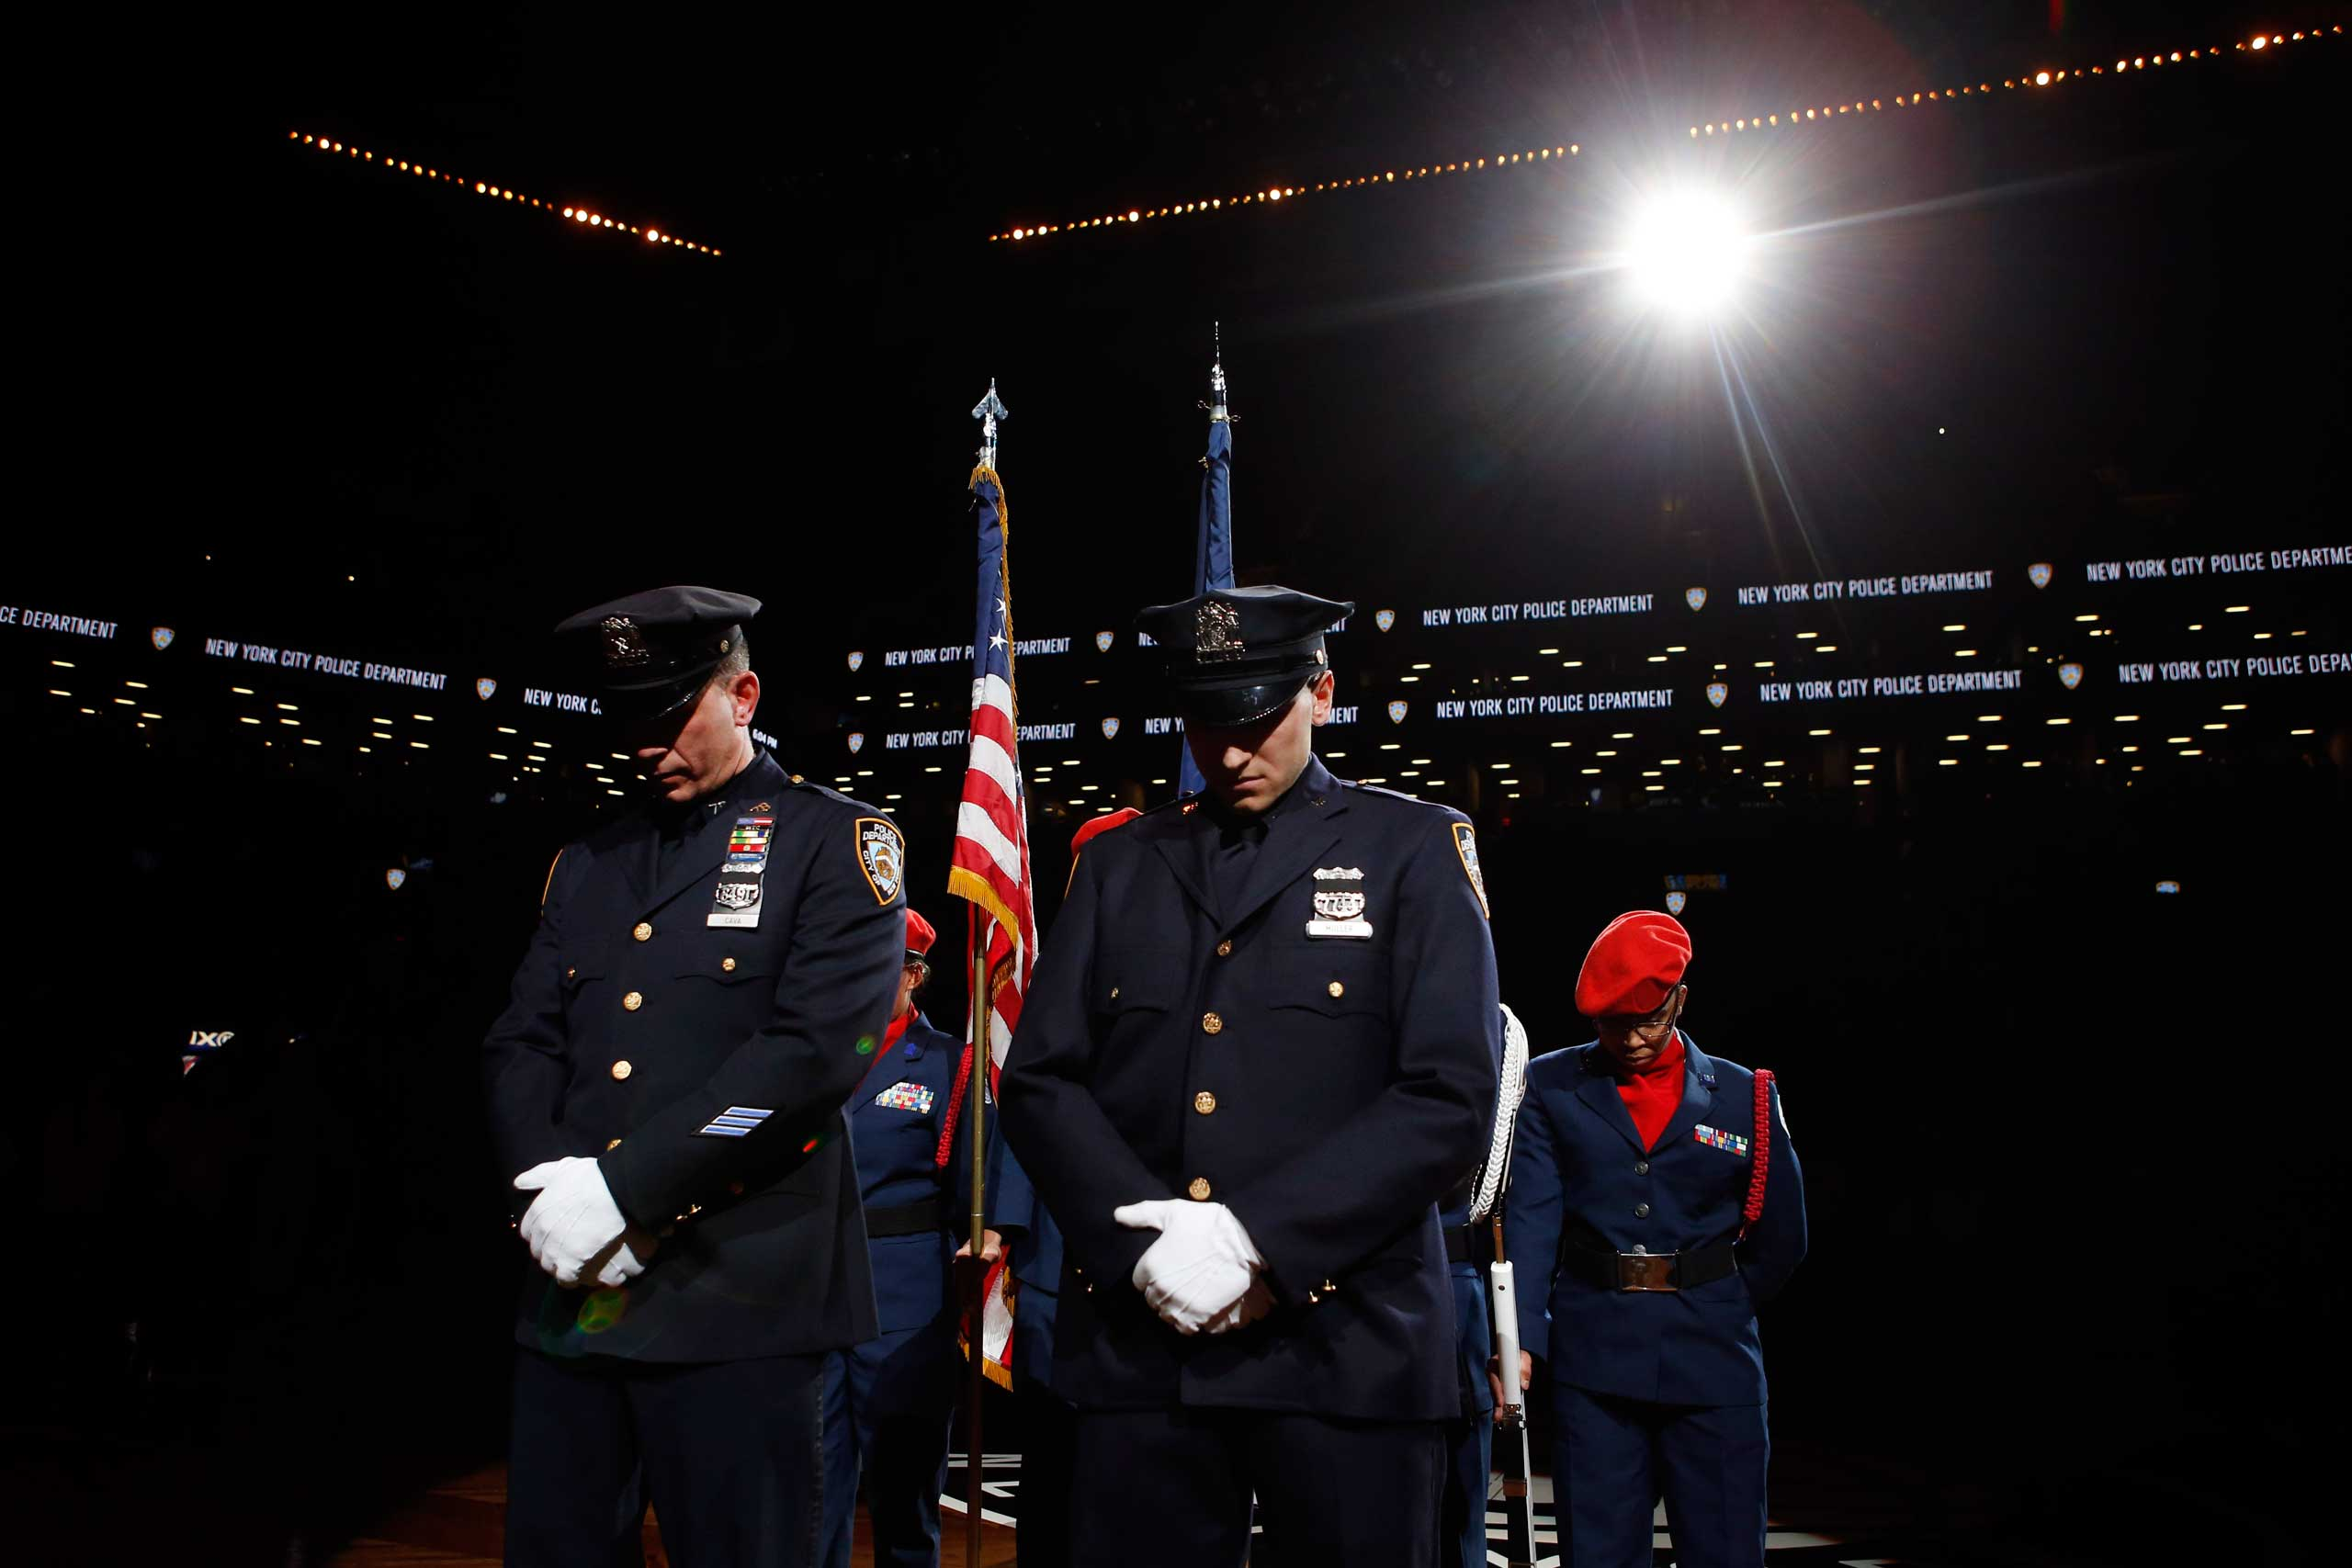 New York Police Department officers Mark Cava, left, and Jason Muller participate in a moment of silence for two slain NYPD officers before an NBA basketball game between the Brooklyn Nets and the Detroit Pistons on Dec. 21, 2014, in New York City.